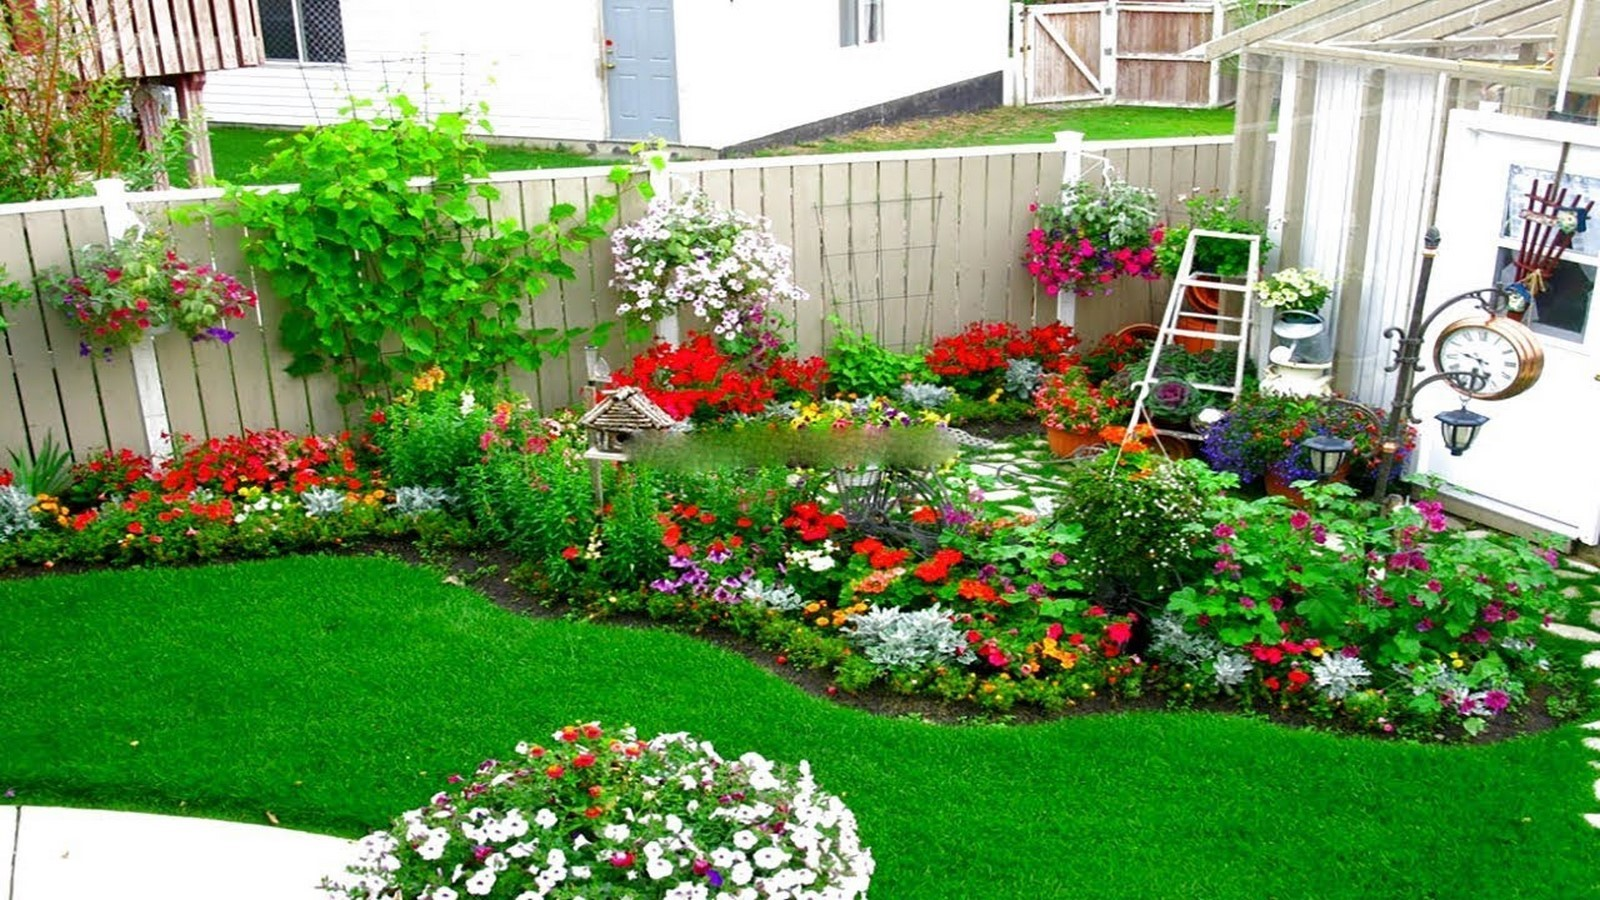 50 Ideas and Tips for Landscaping - Sheet18